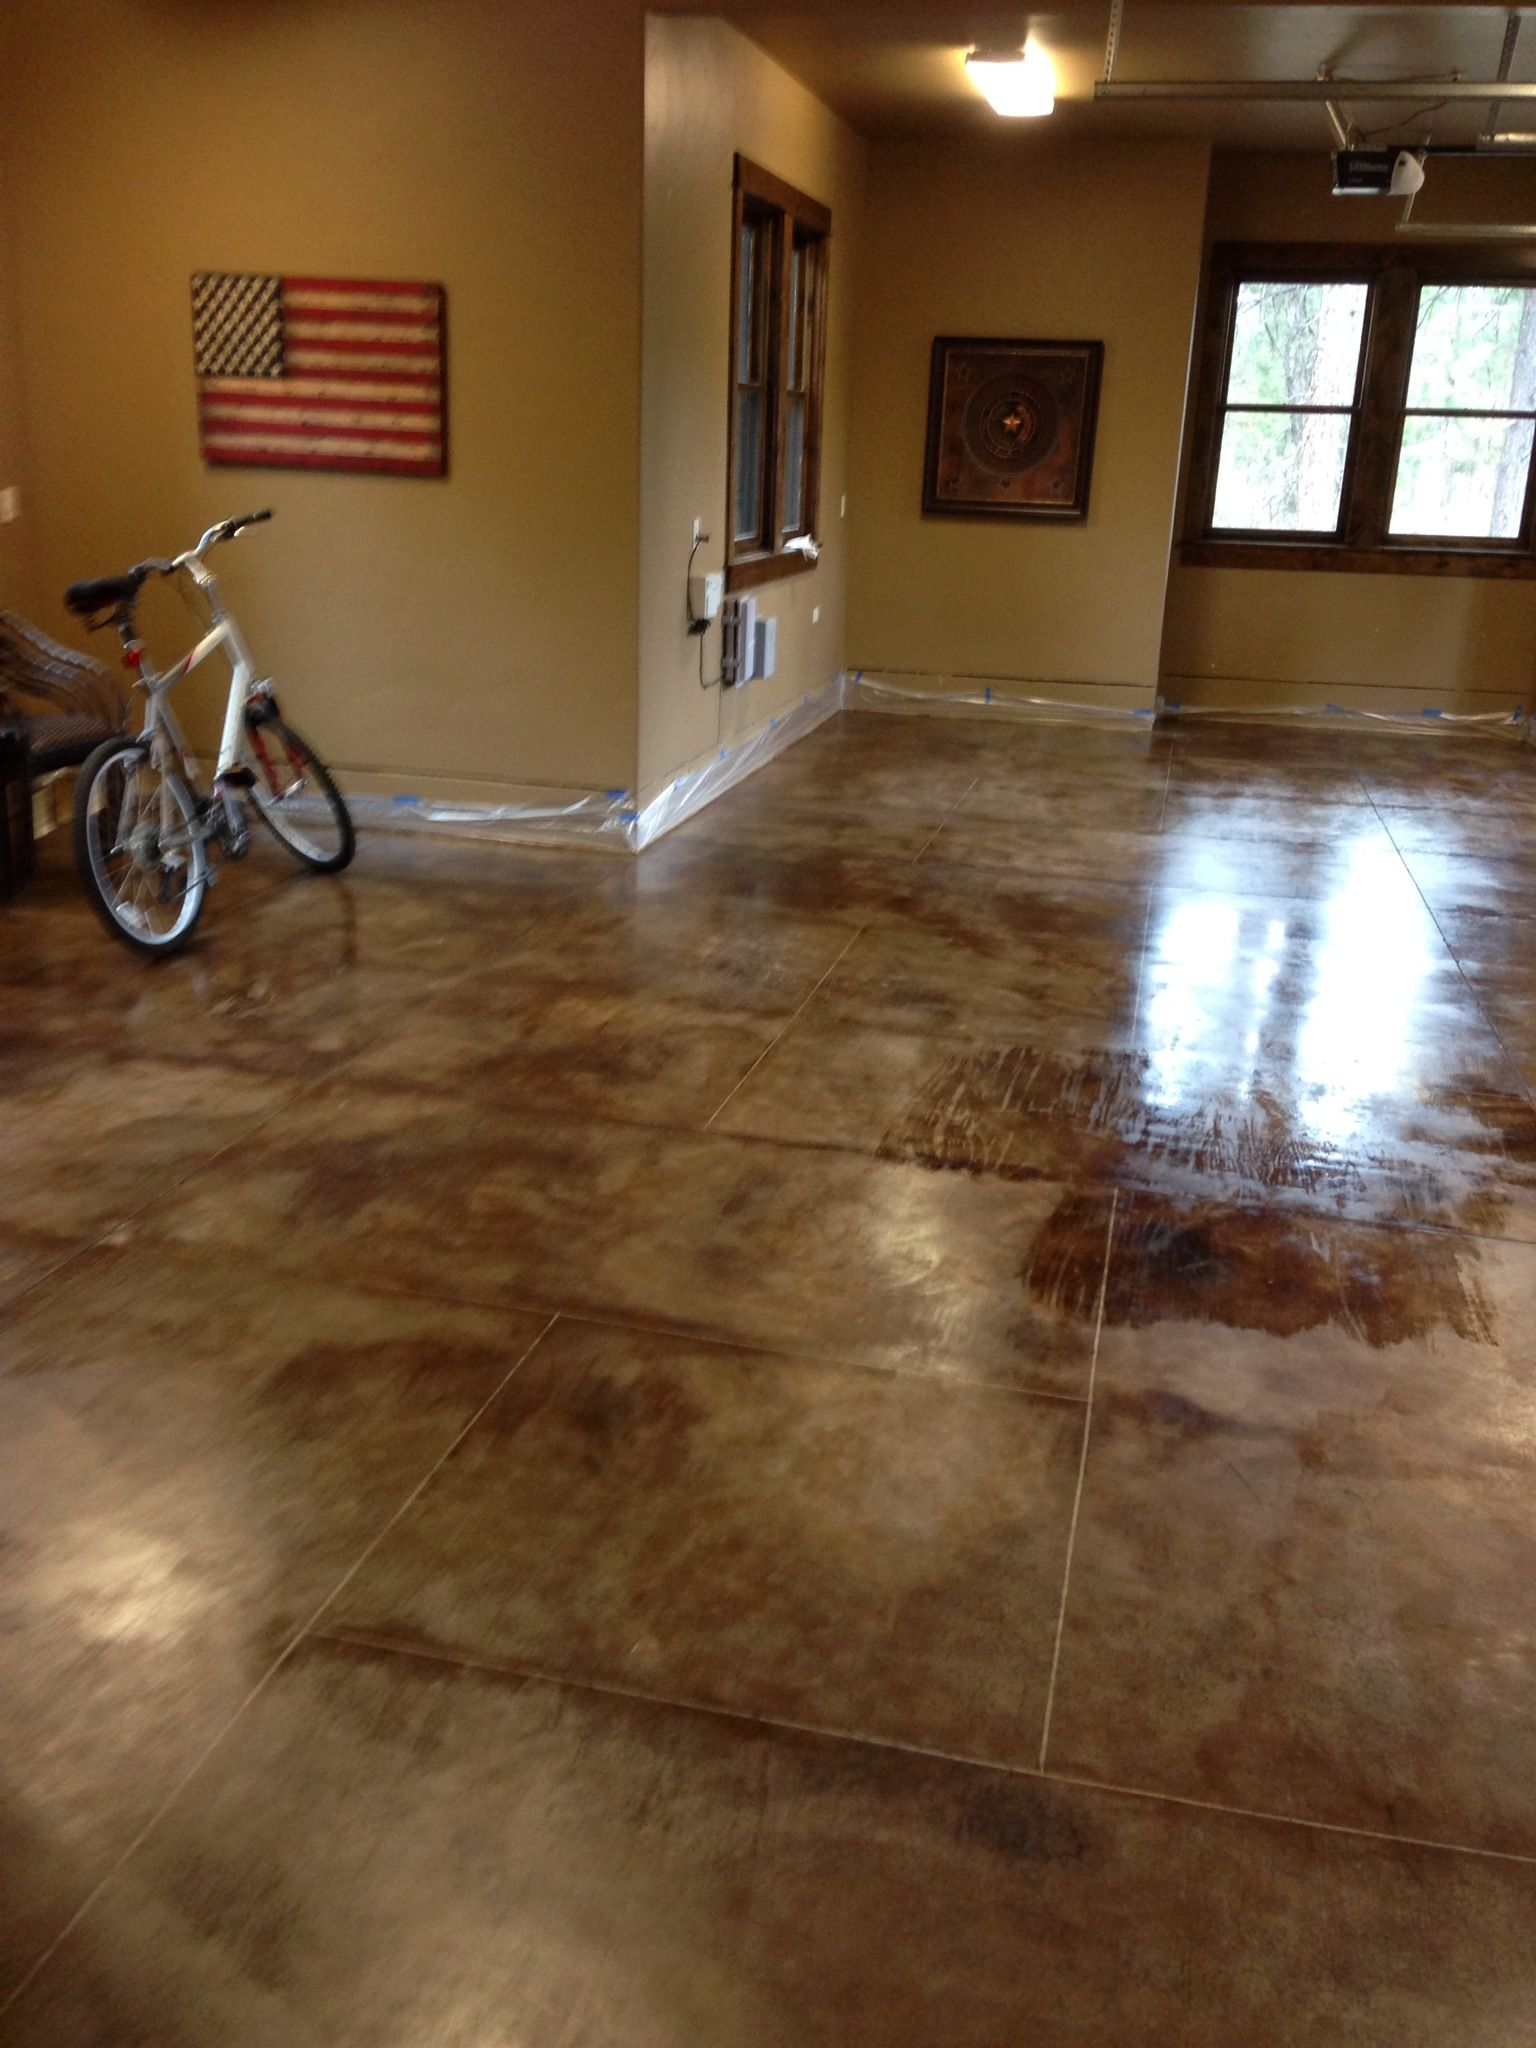 Garage - Stained Concrete Floor | Oregon House | Pinterest | Stained